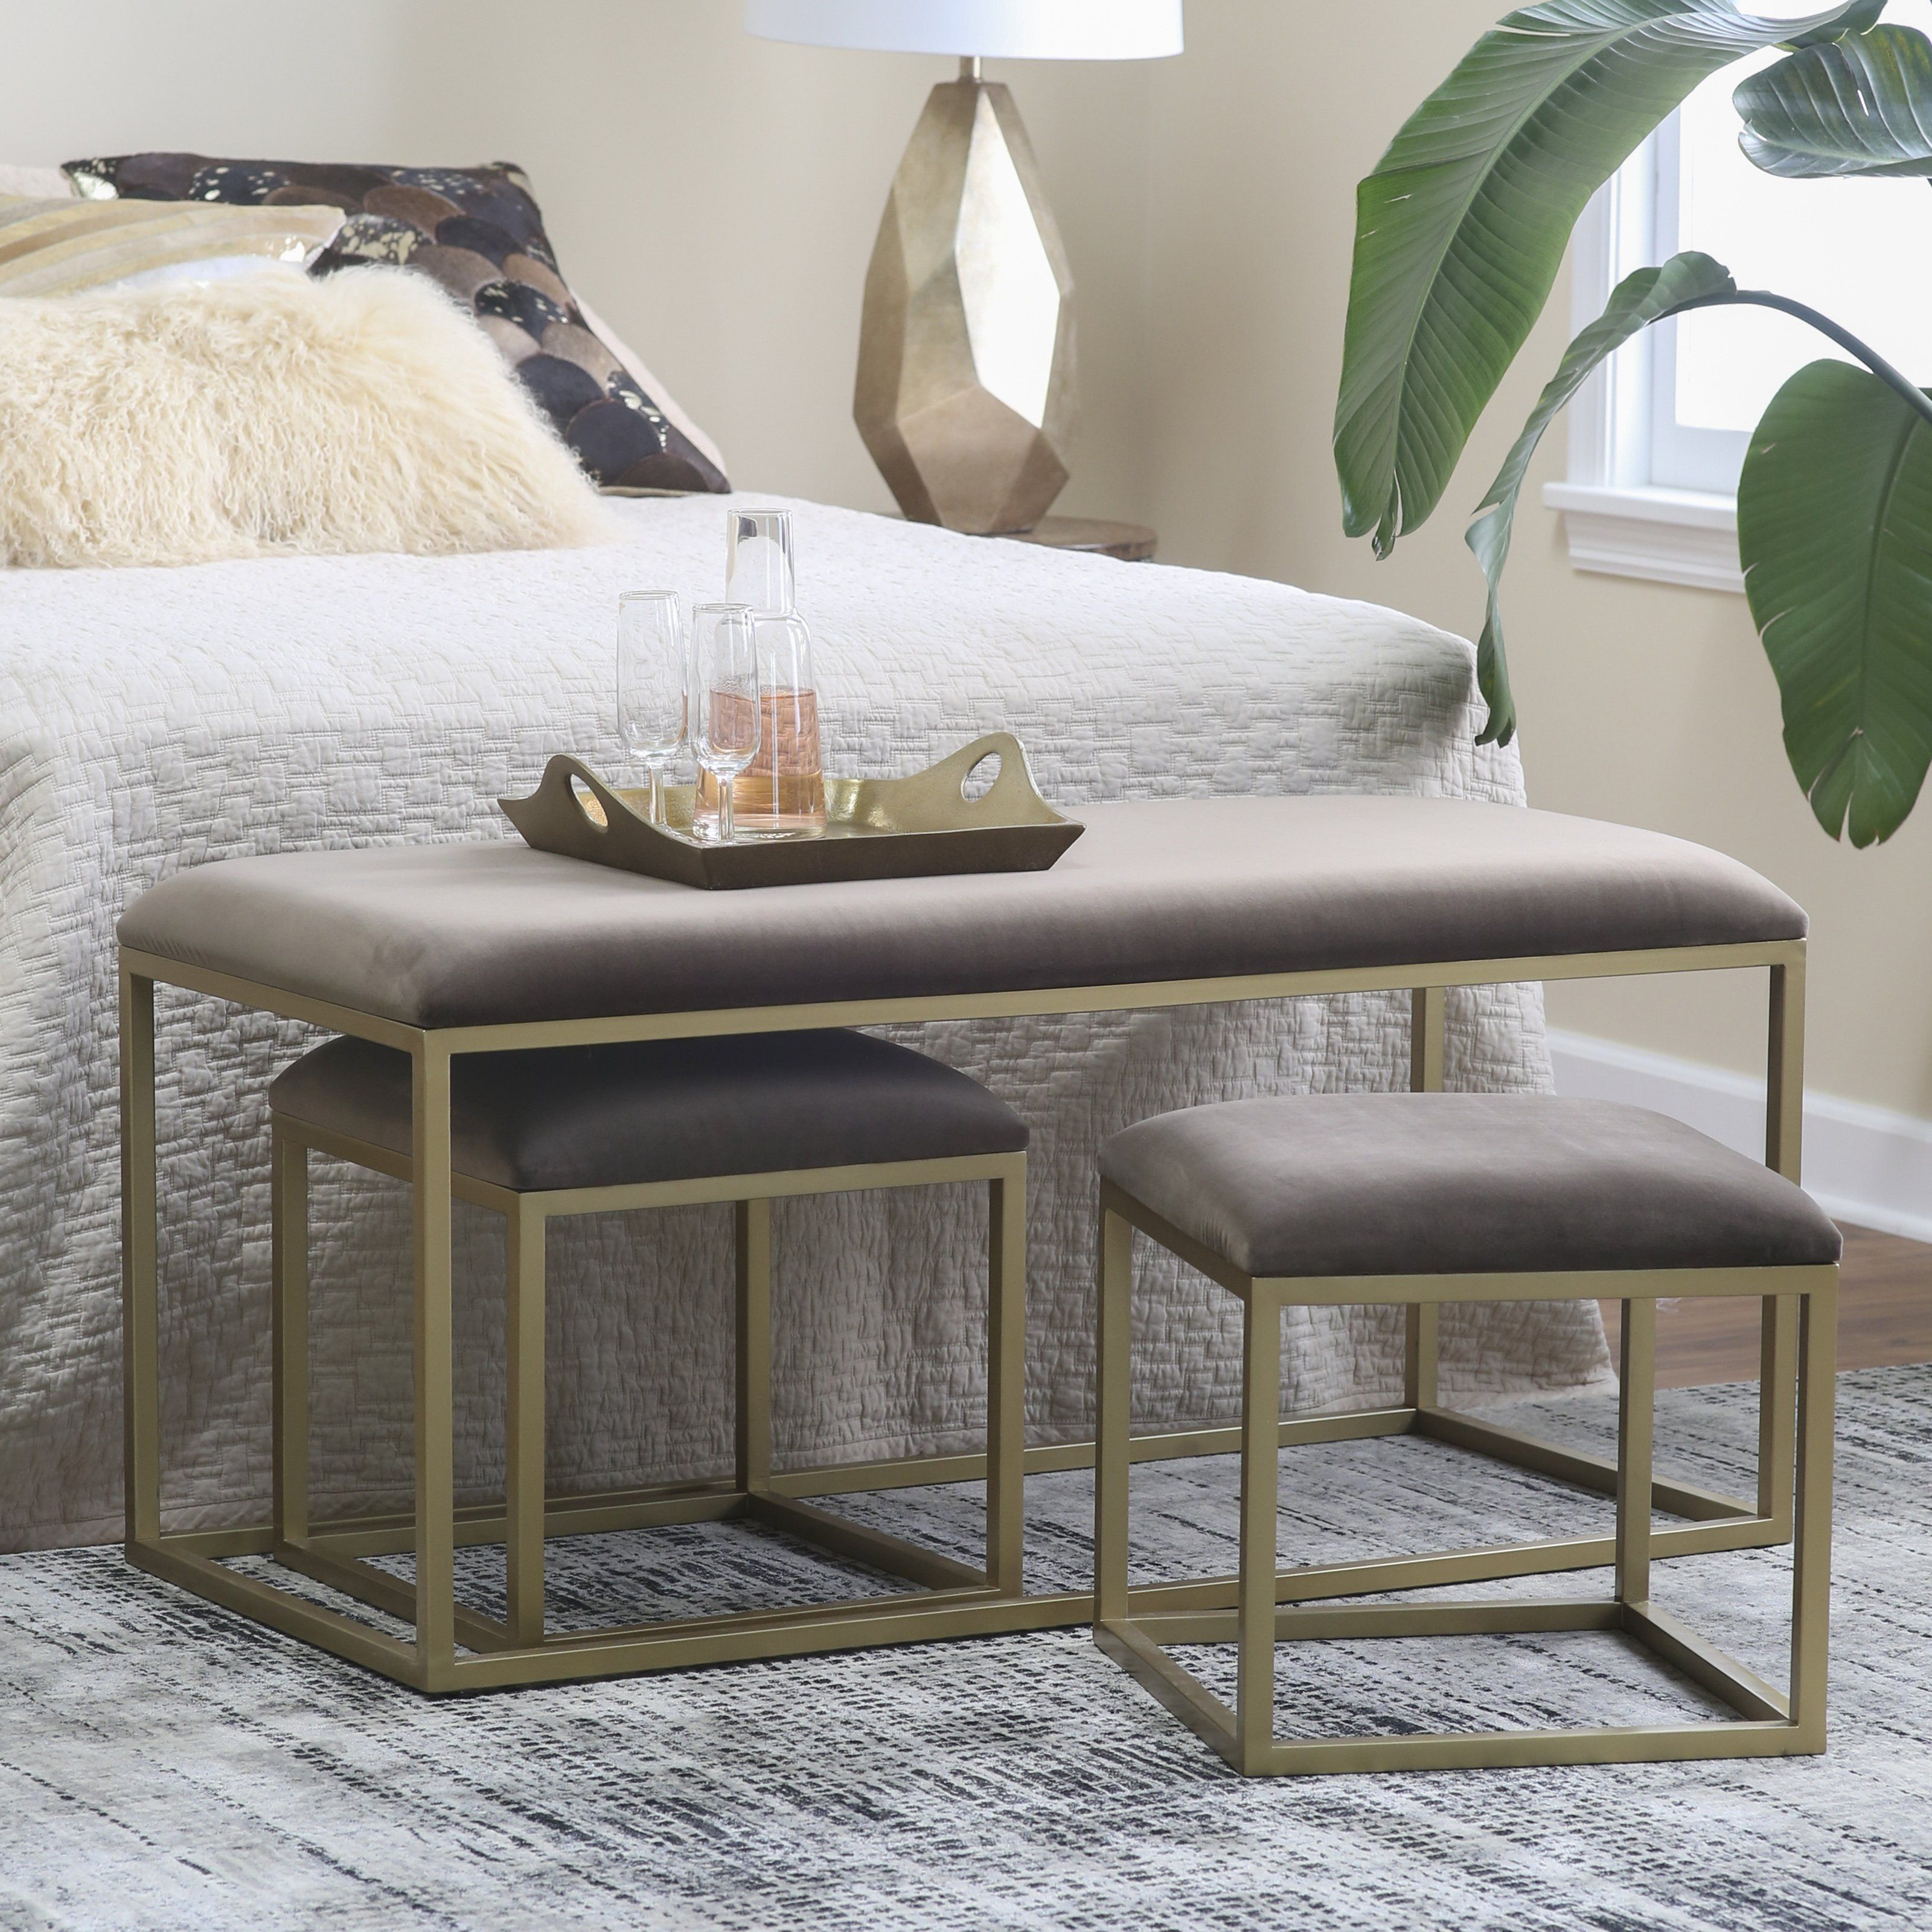 livingroom storage cabinets furniture hidden with ideas for bench tufted living design small seat livings agreeable doors table bedroom benches white room